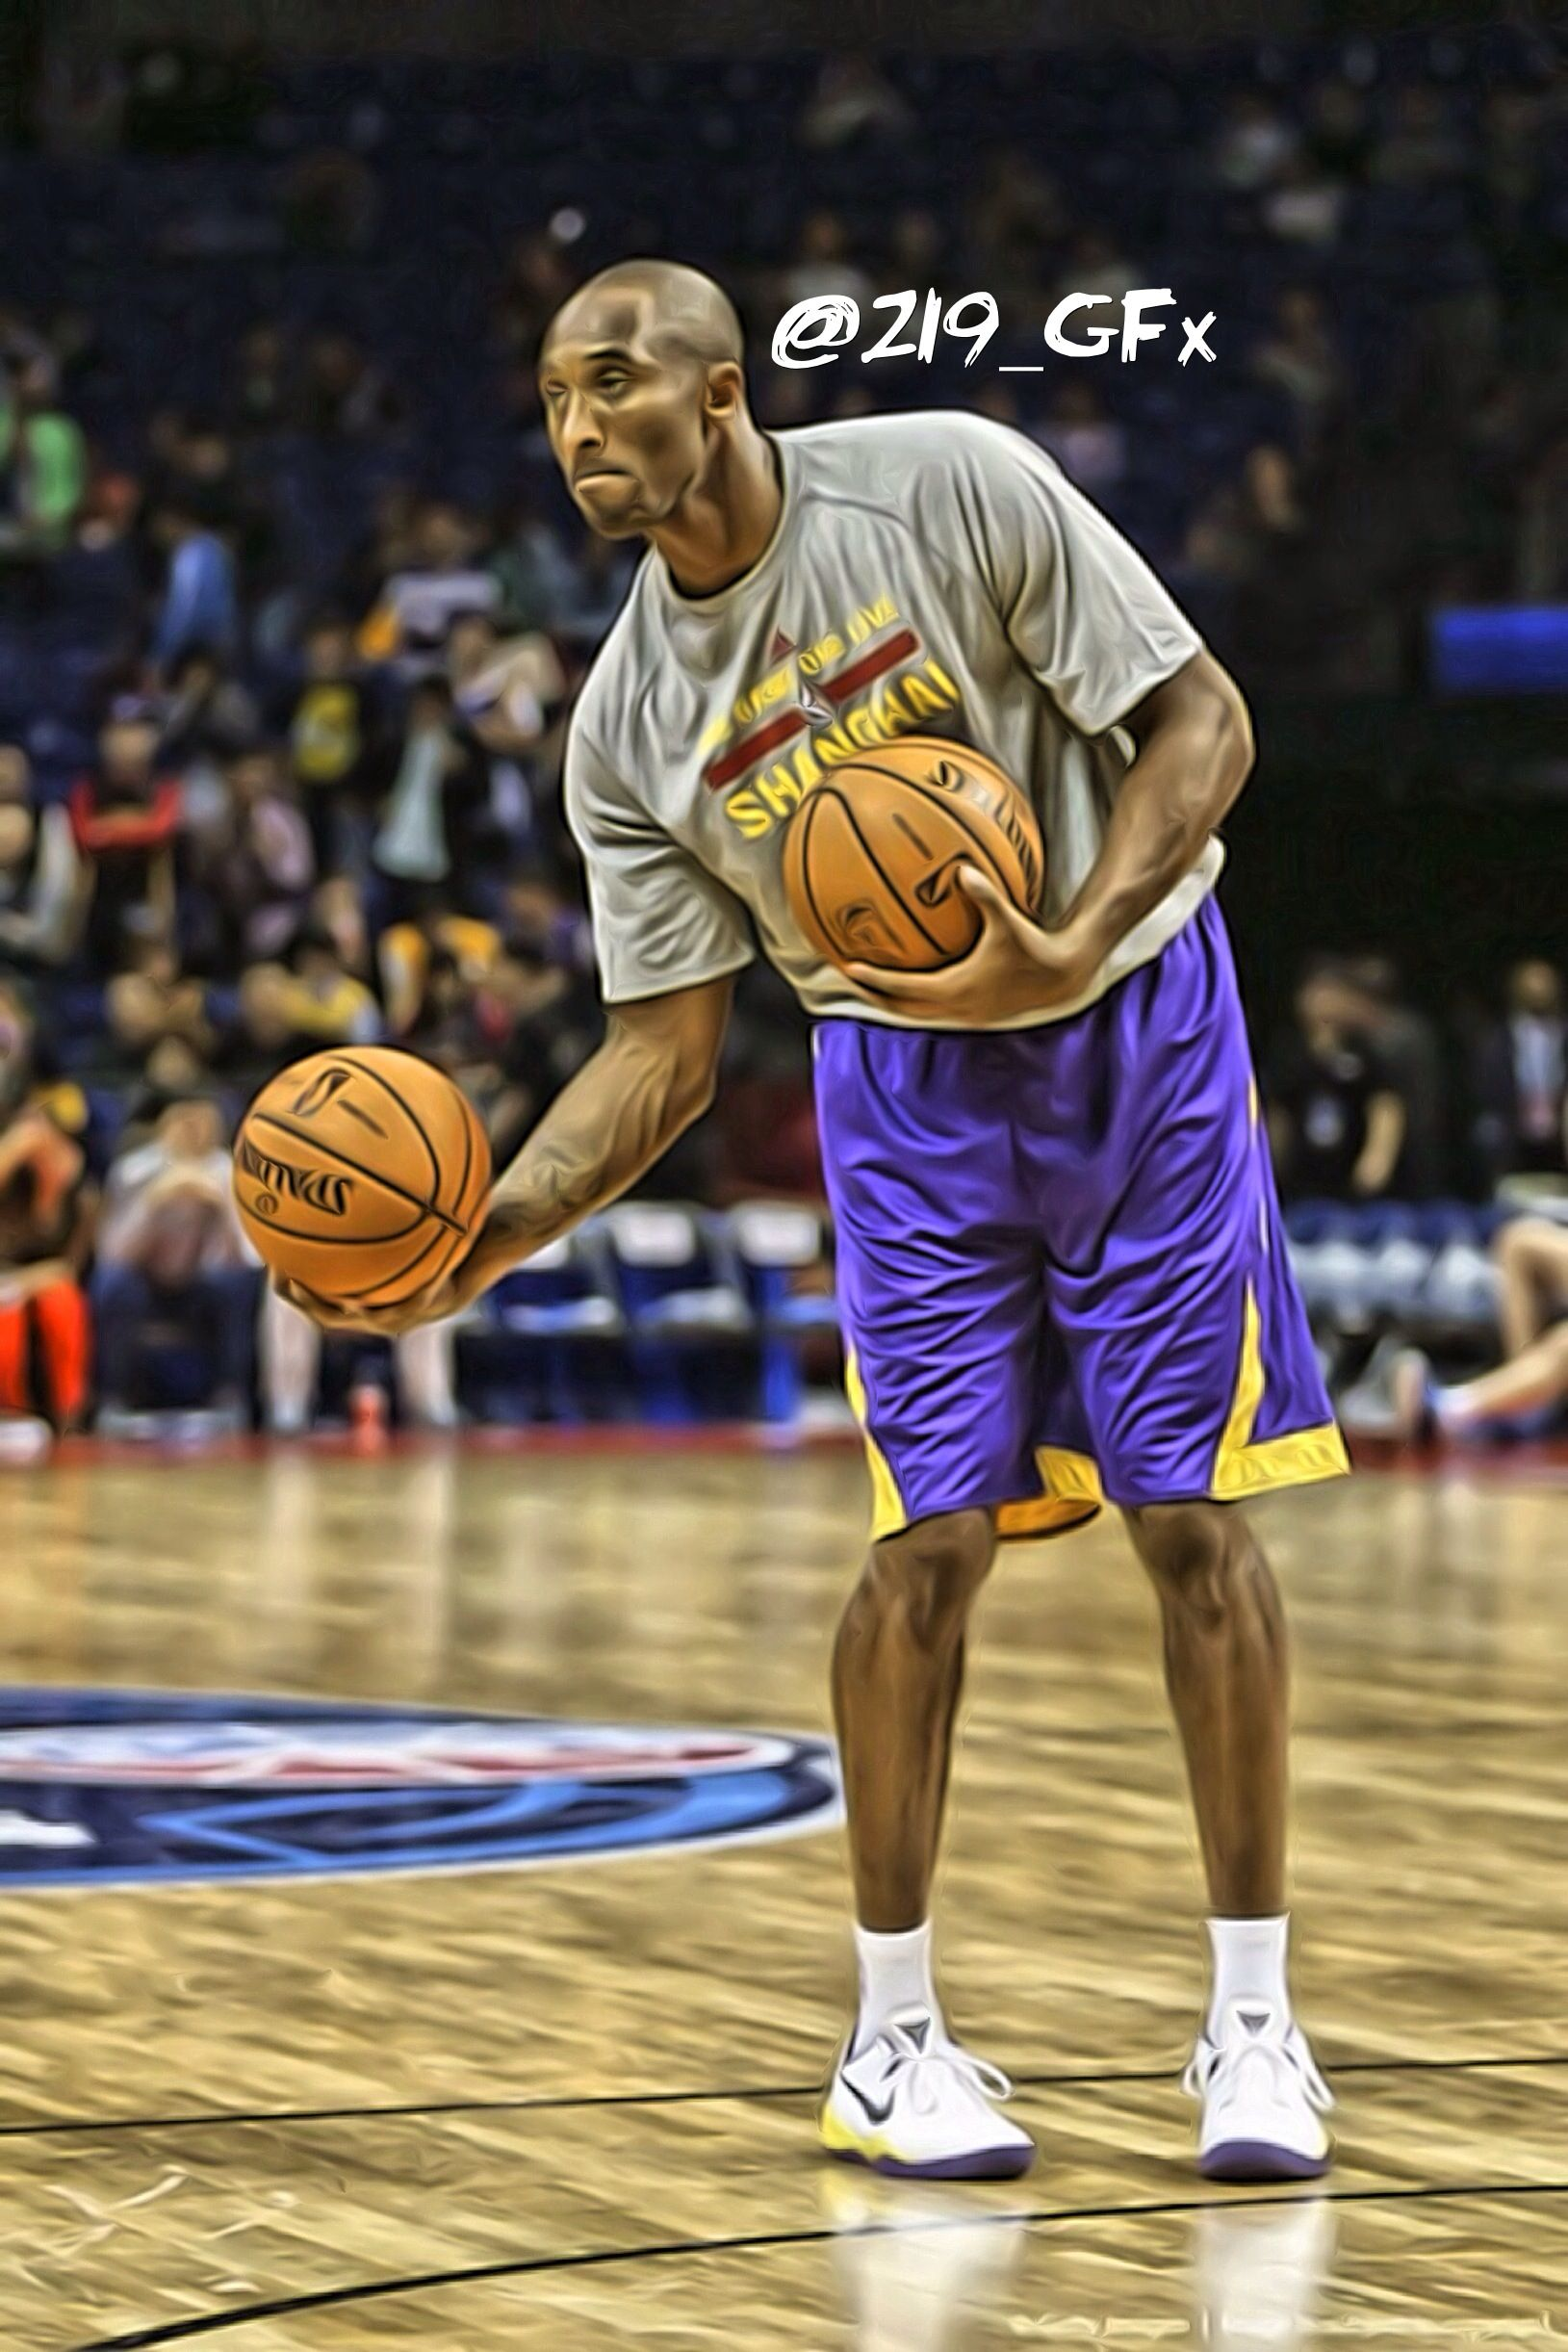 informative speech on kobe bryant The best kobe bryant quotes to inspire you to achieve success kobe bryant quotes on winning champions and dominating basketball.